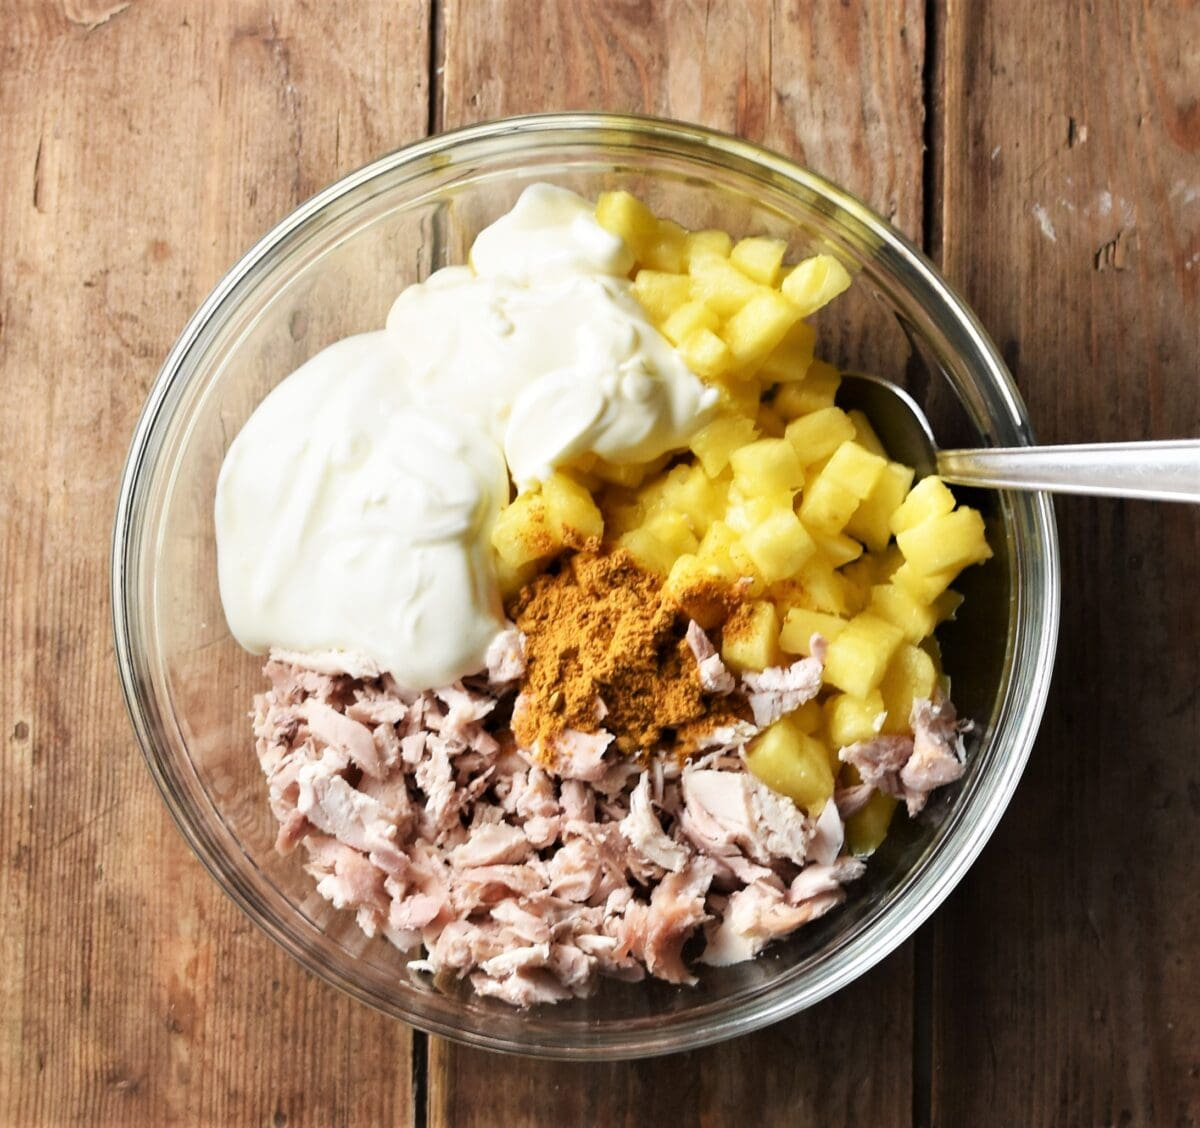 Chopped chicken, pineapple, yogurt and spice in mixing bowl with spoon.